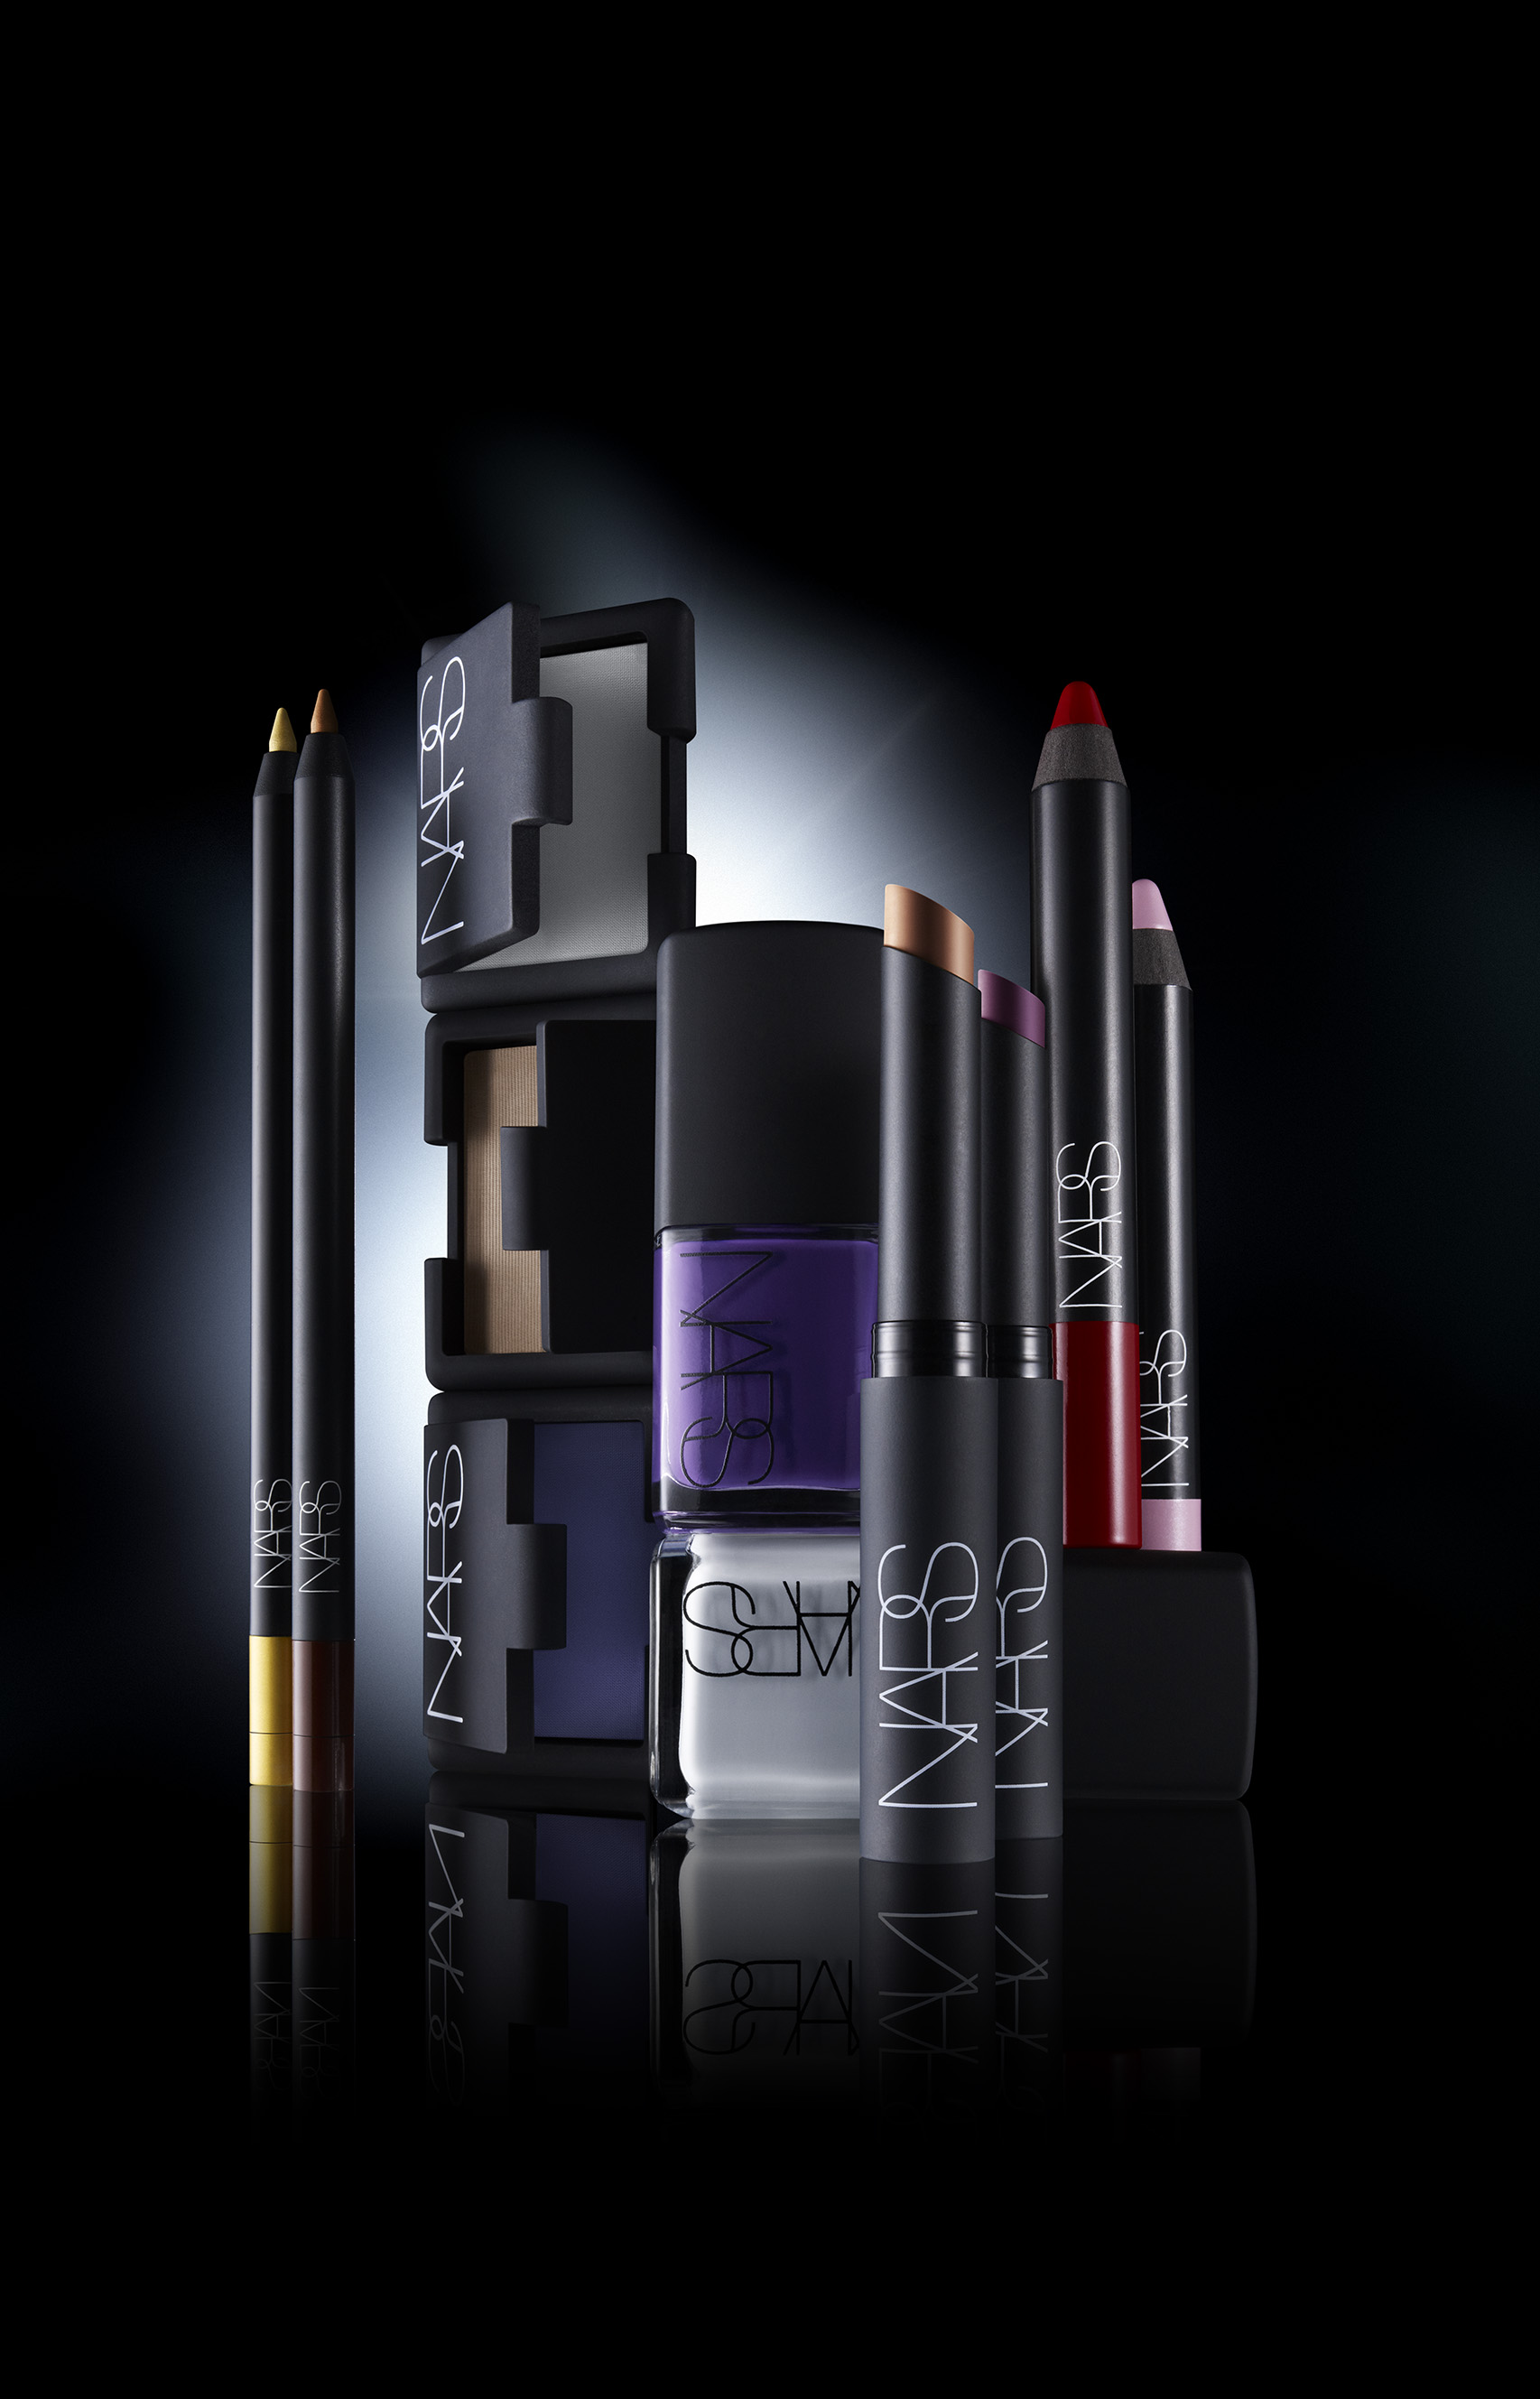 NARS Fall 2013 Color Collection group shot - hi res